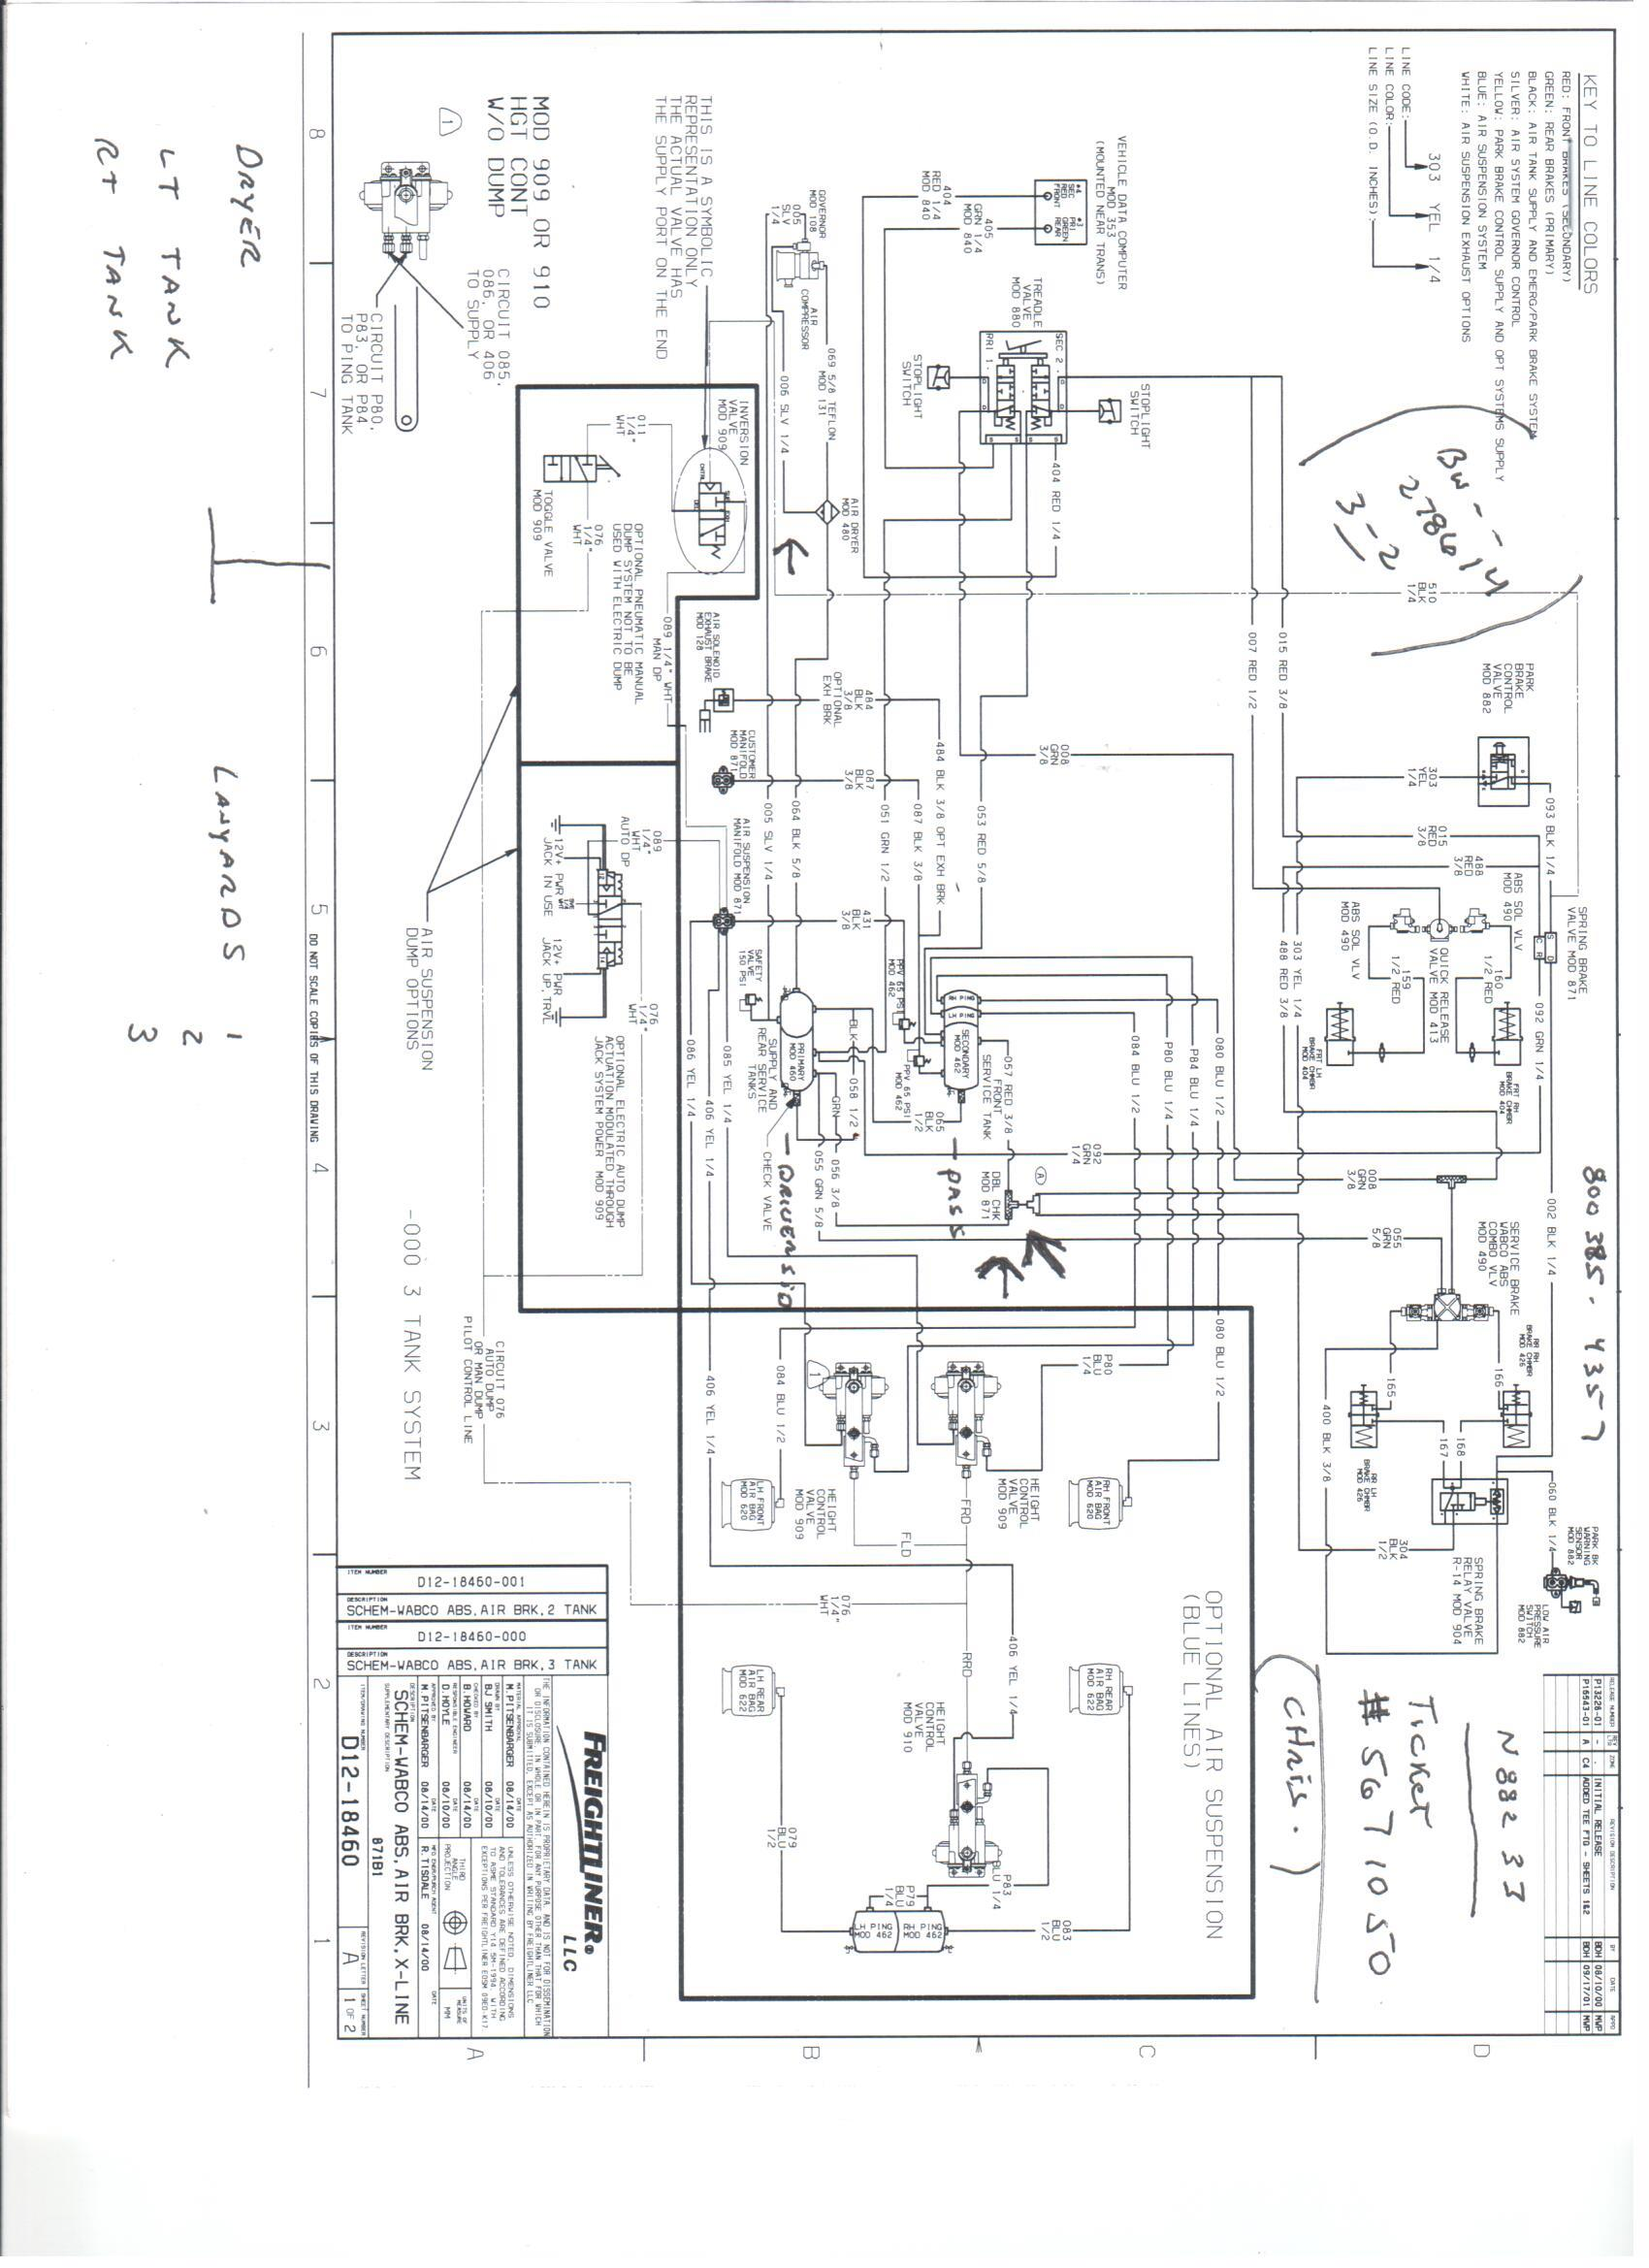 air bag dump valve schematic